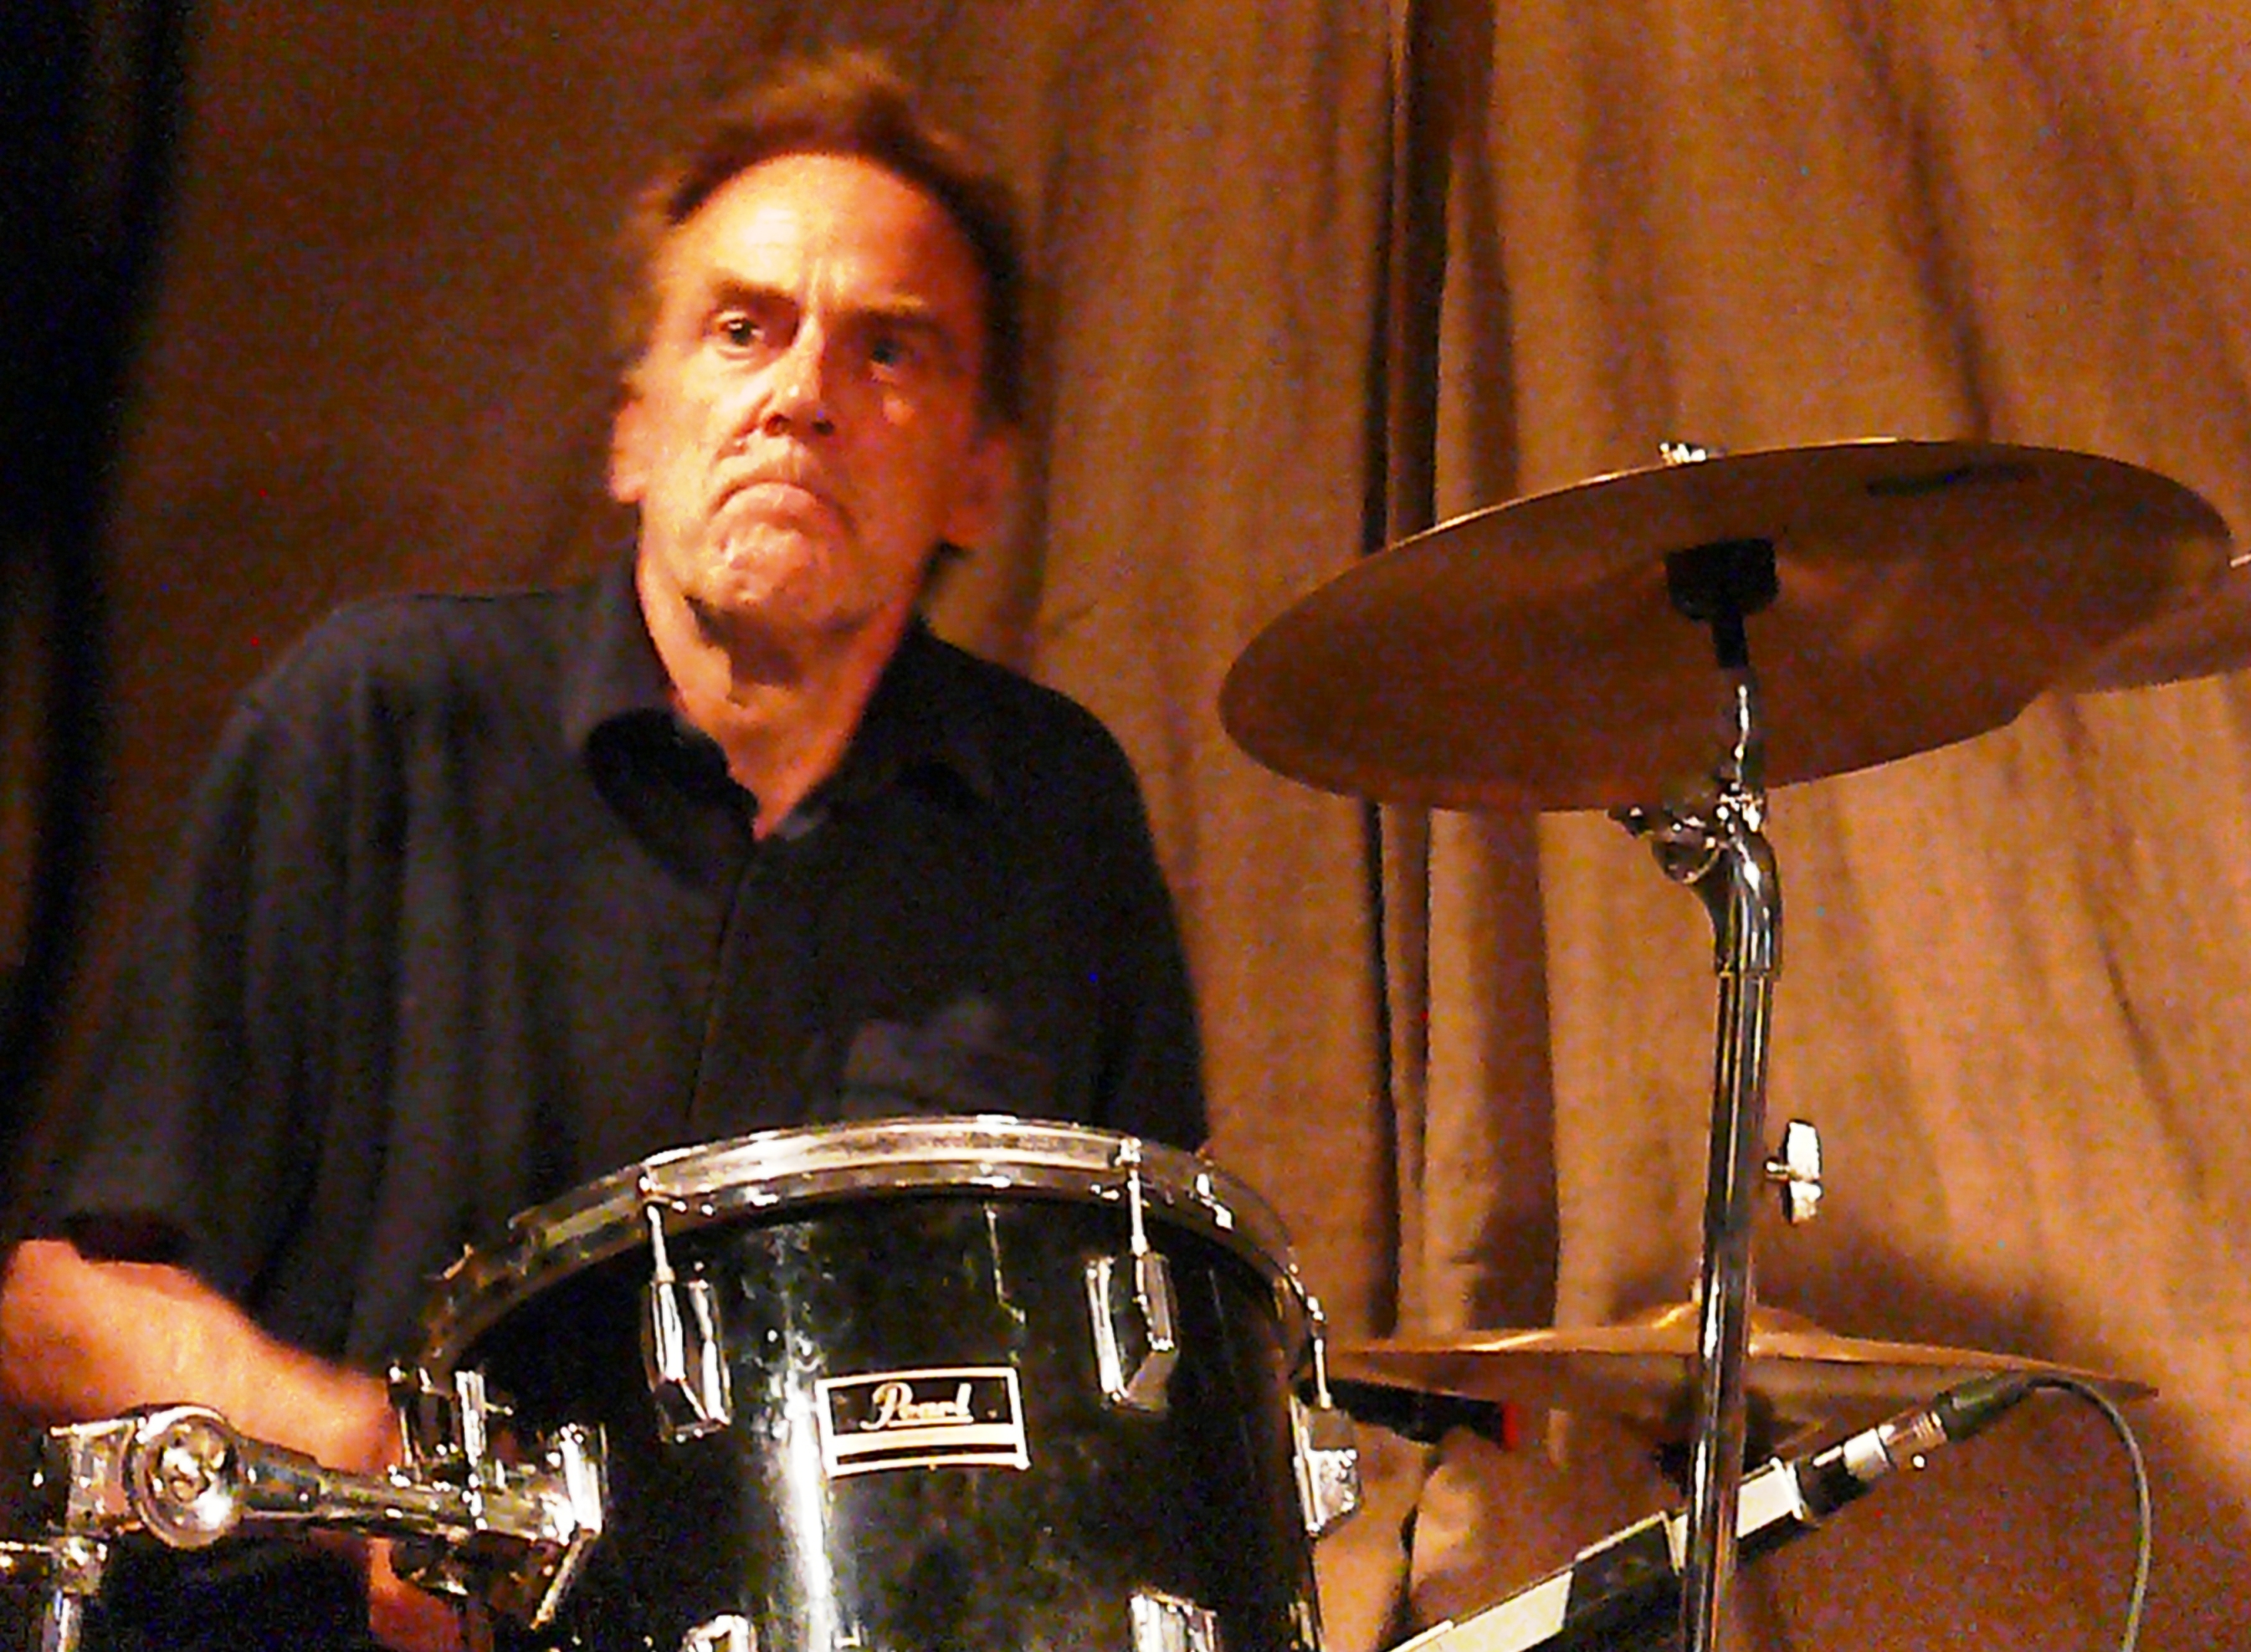 Charles Hayward at Cafe Oto, London in August 2012